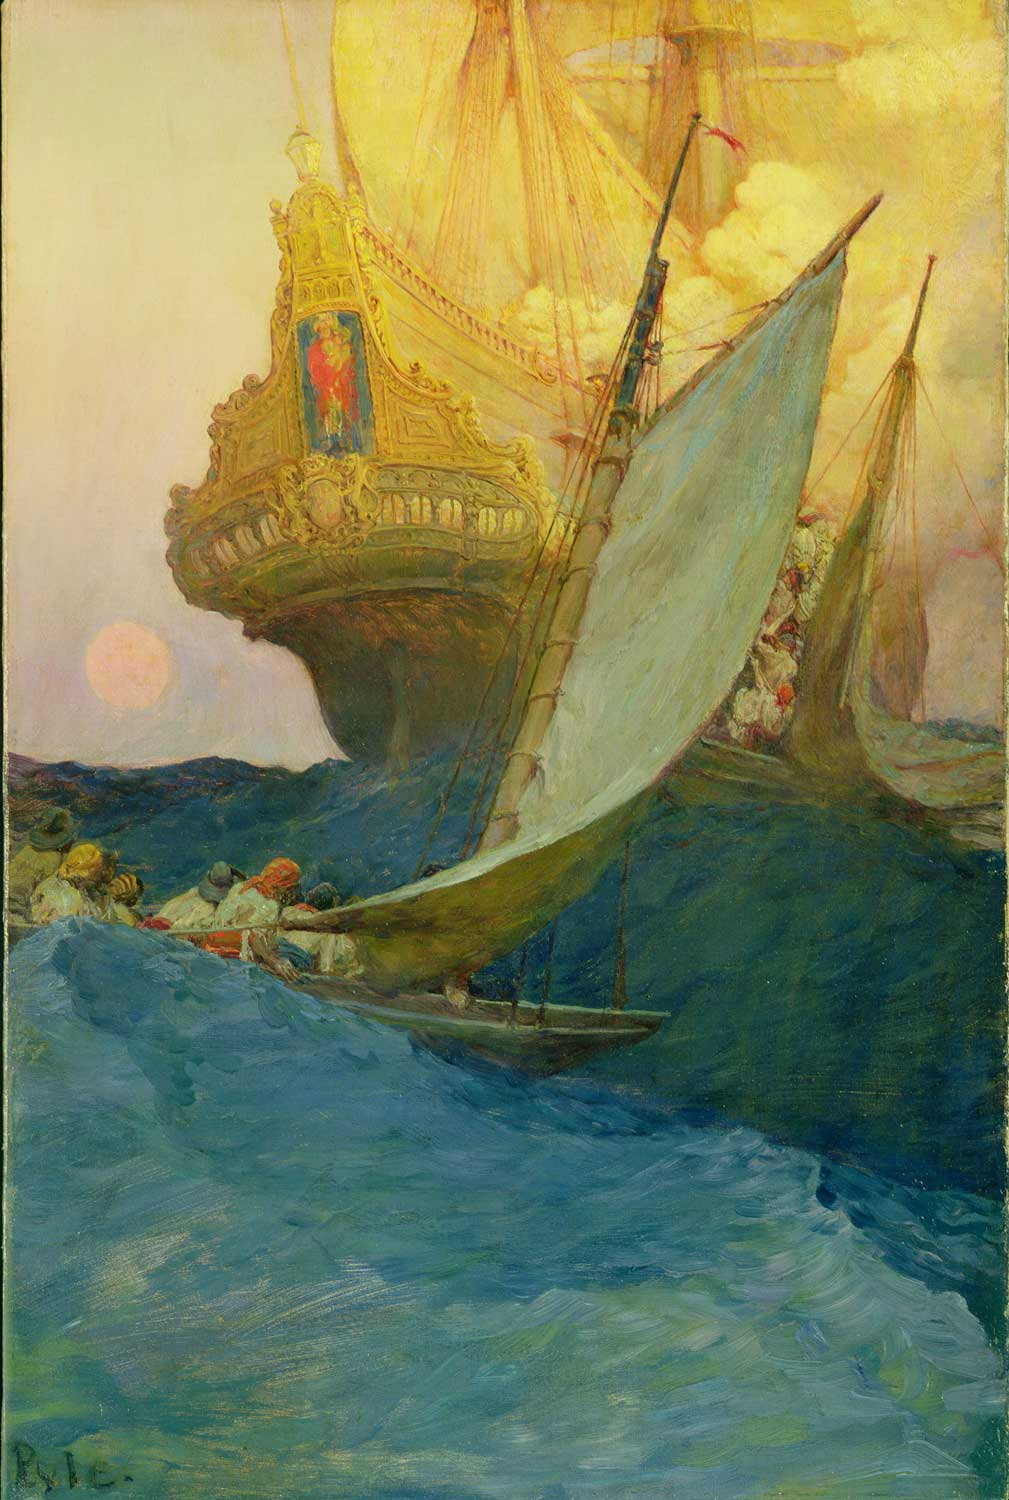 """An Attack on a Galleon,"" Howard Pyle, 1905. Oil on canvas."